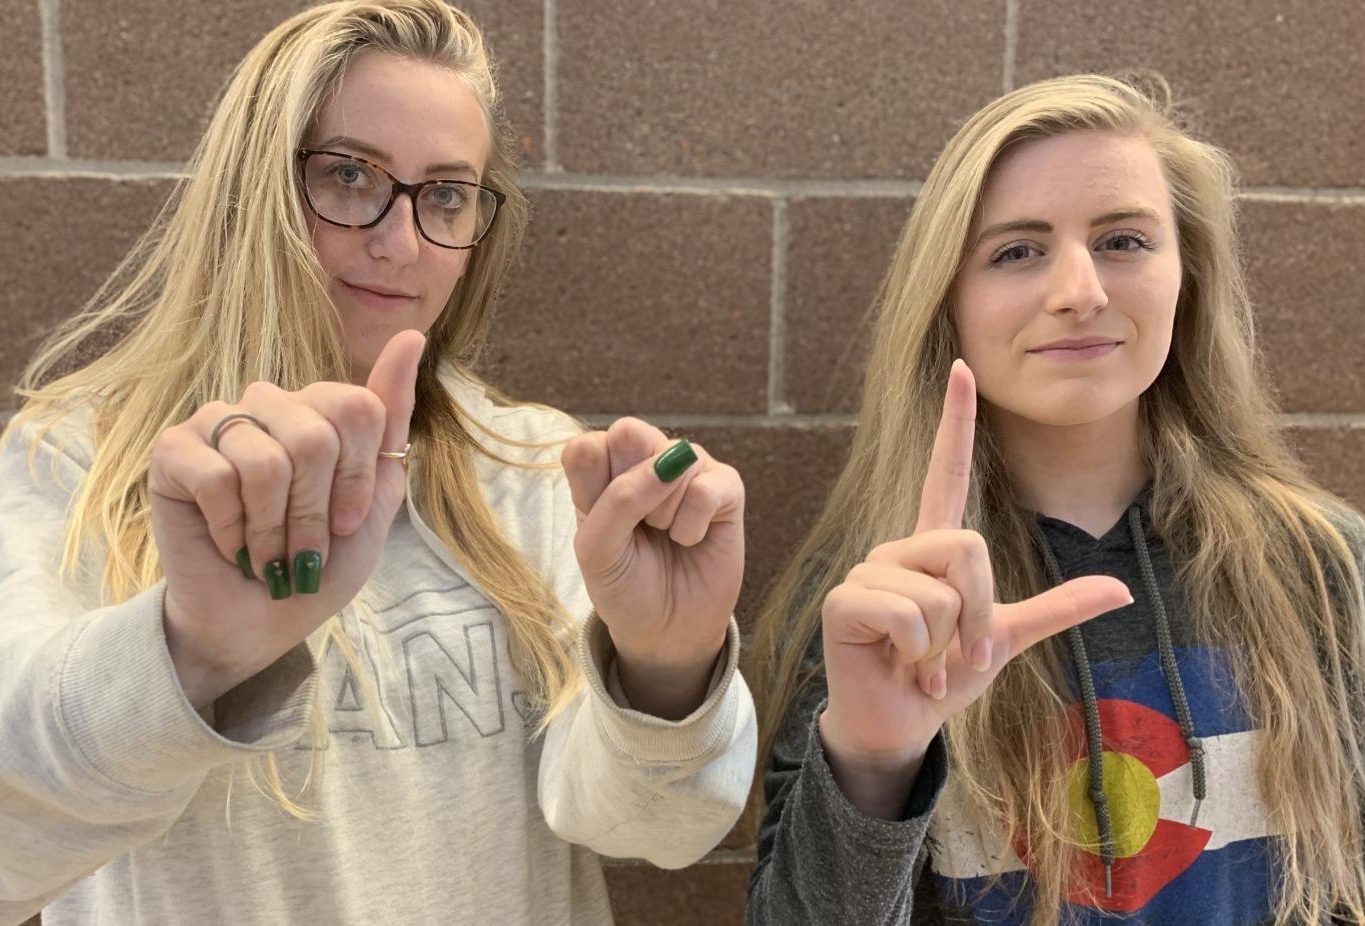 Andrea Randolph and Maddie Martenson, two previous ASL students from Mead, spell out ASL in sign language.